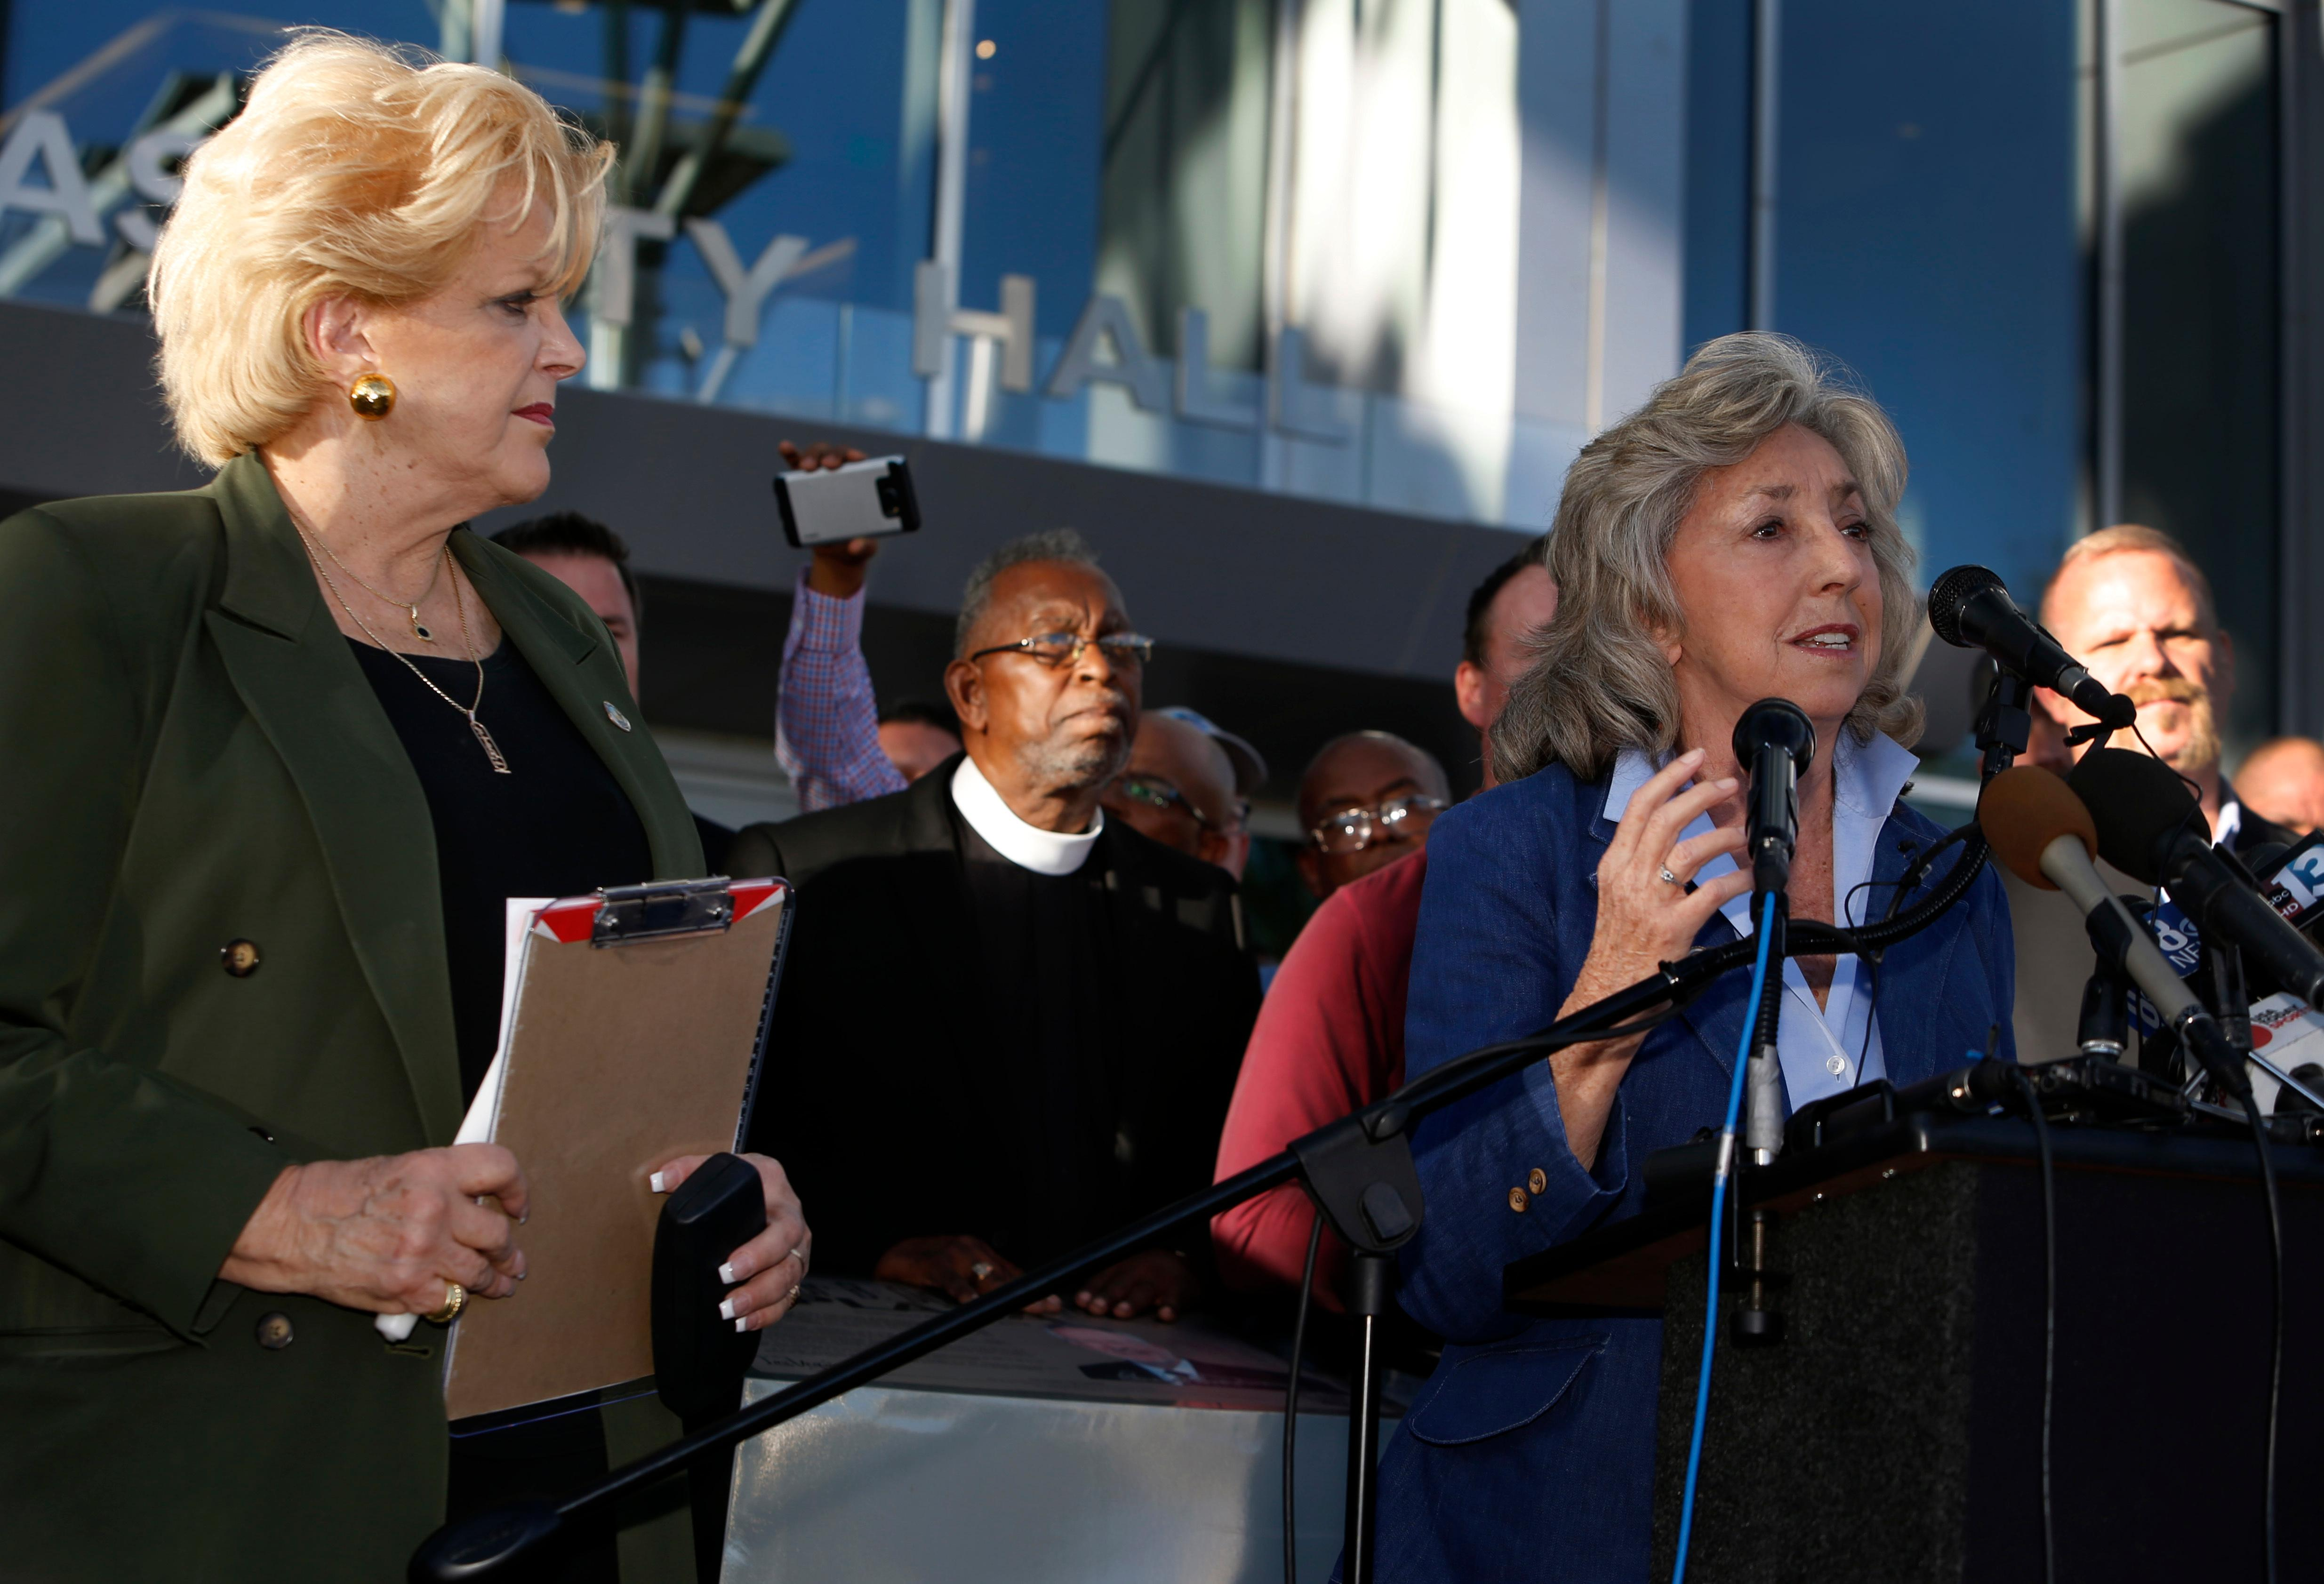 Las Vegas Mayor Carolyn Goodman, left, listens to Congresswoman Dina Titus, D-Nev., during a prayer vigil in honor of those affected by the shooting on the Las Vegas Strip, in front of Las Vegas City Hall in Las Vegas, Monday, Oct. 2, 2017. The vigil was held in honor of the over 50 people killed and hundreds injured in a mass shooting at an outdoor music concert late Sunday. (Steve Marcus/Las Vegas Sun via AP)